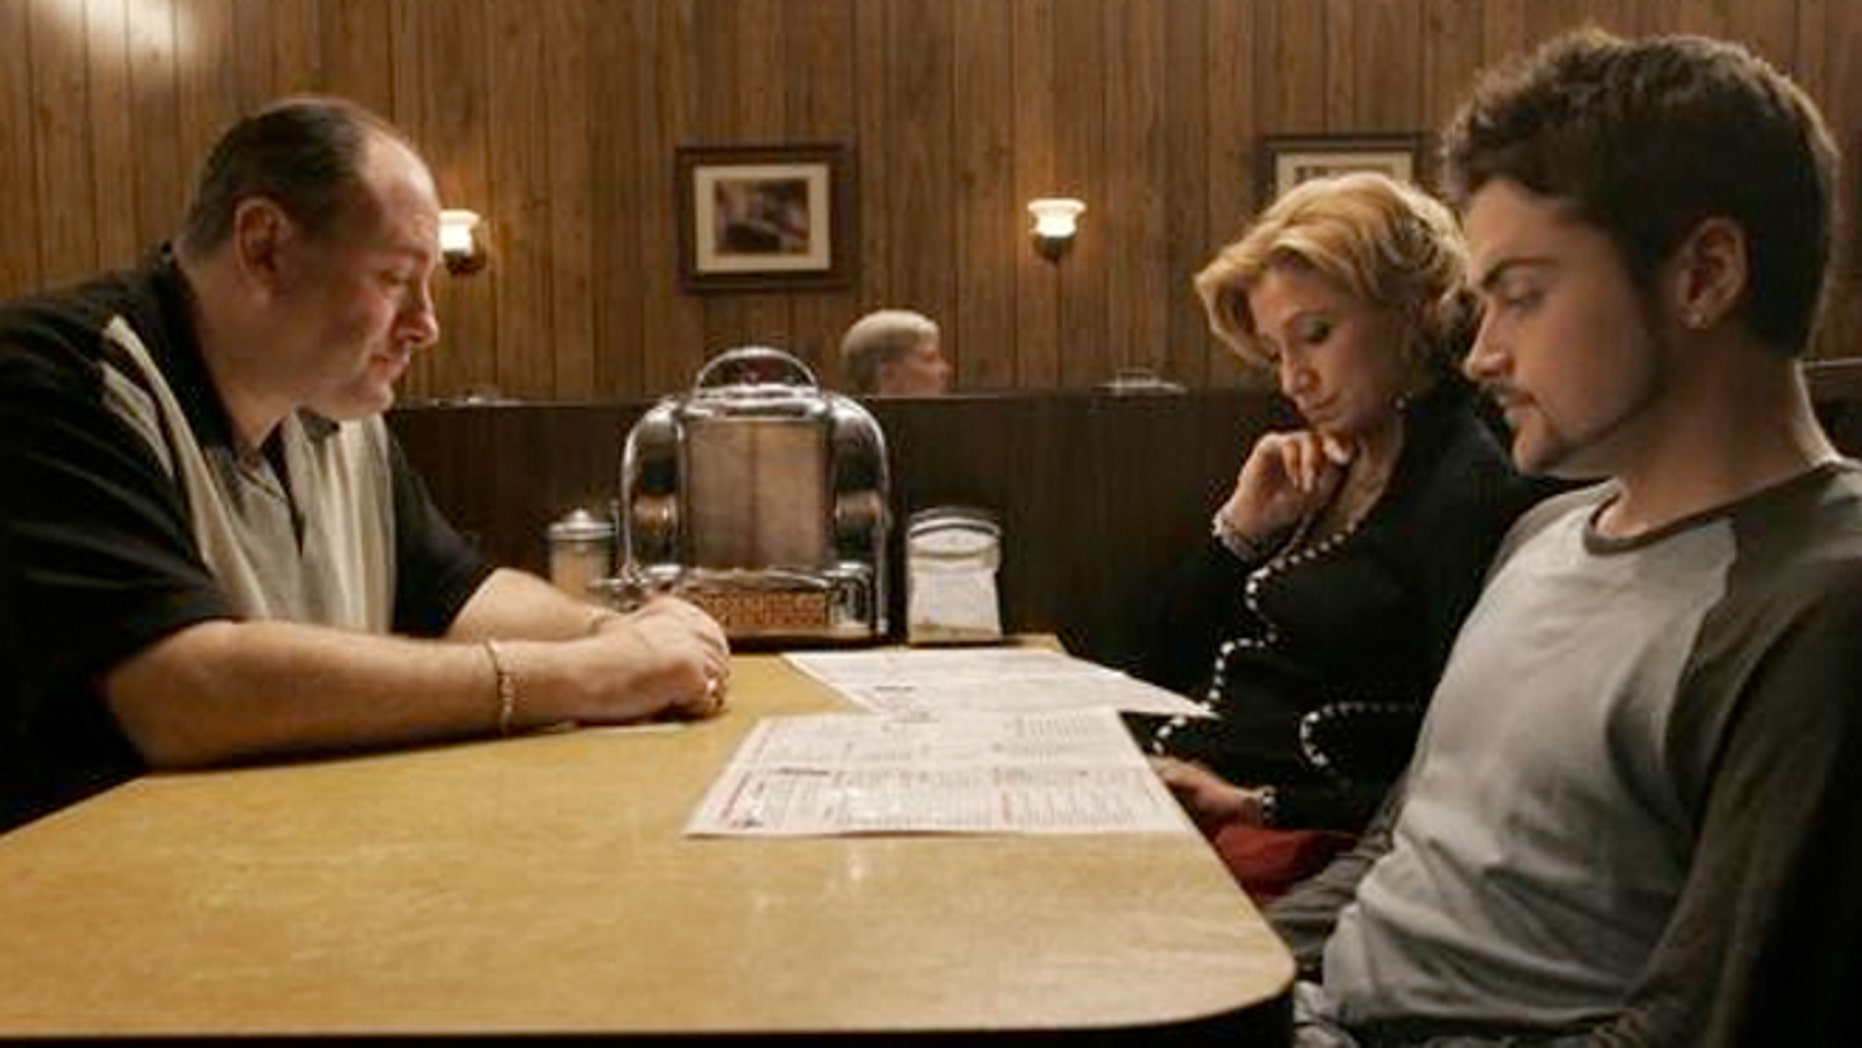 & # 39; The sopranos & # 39; Prequel movie just received a new title.